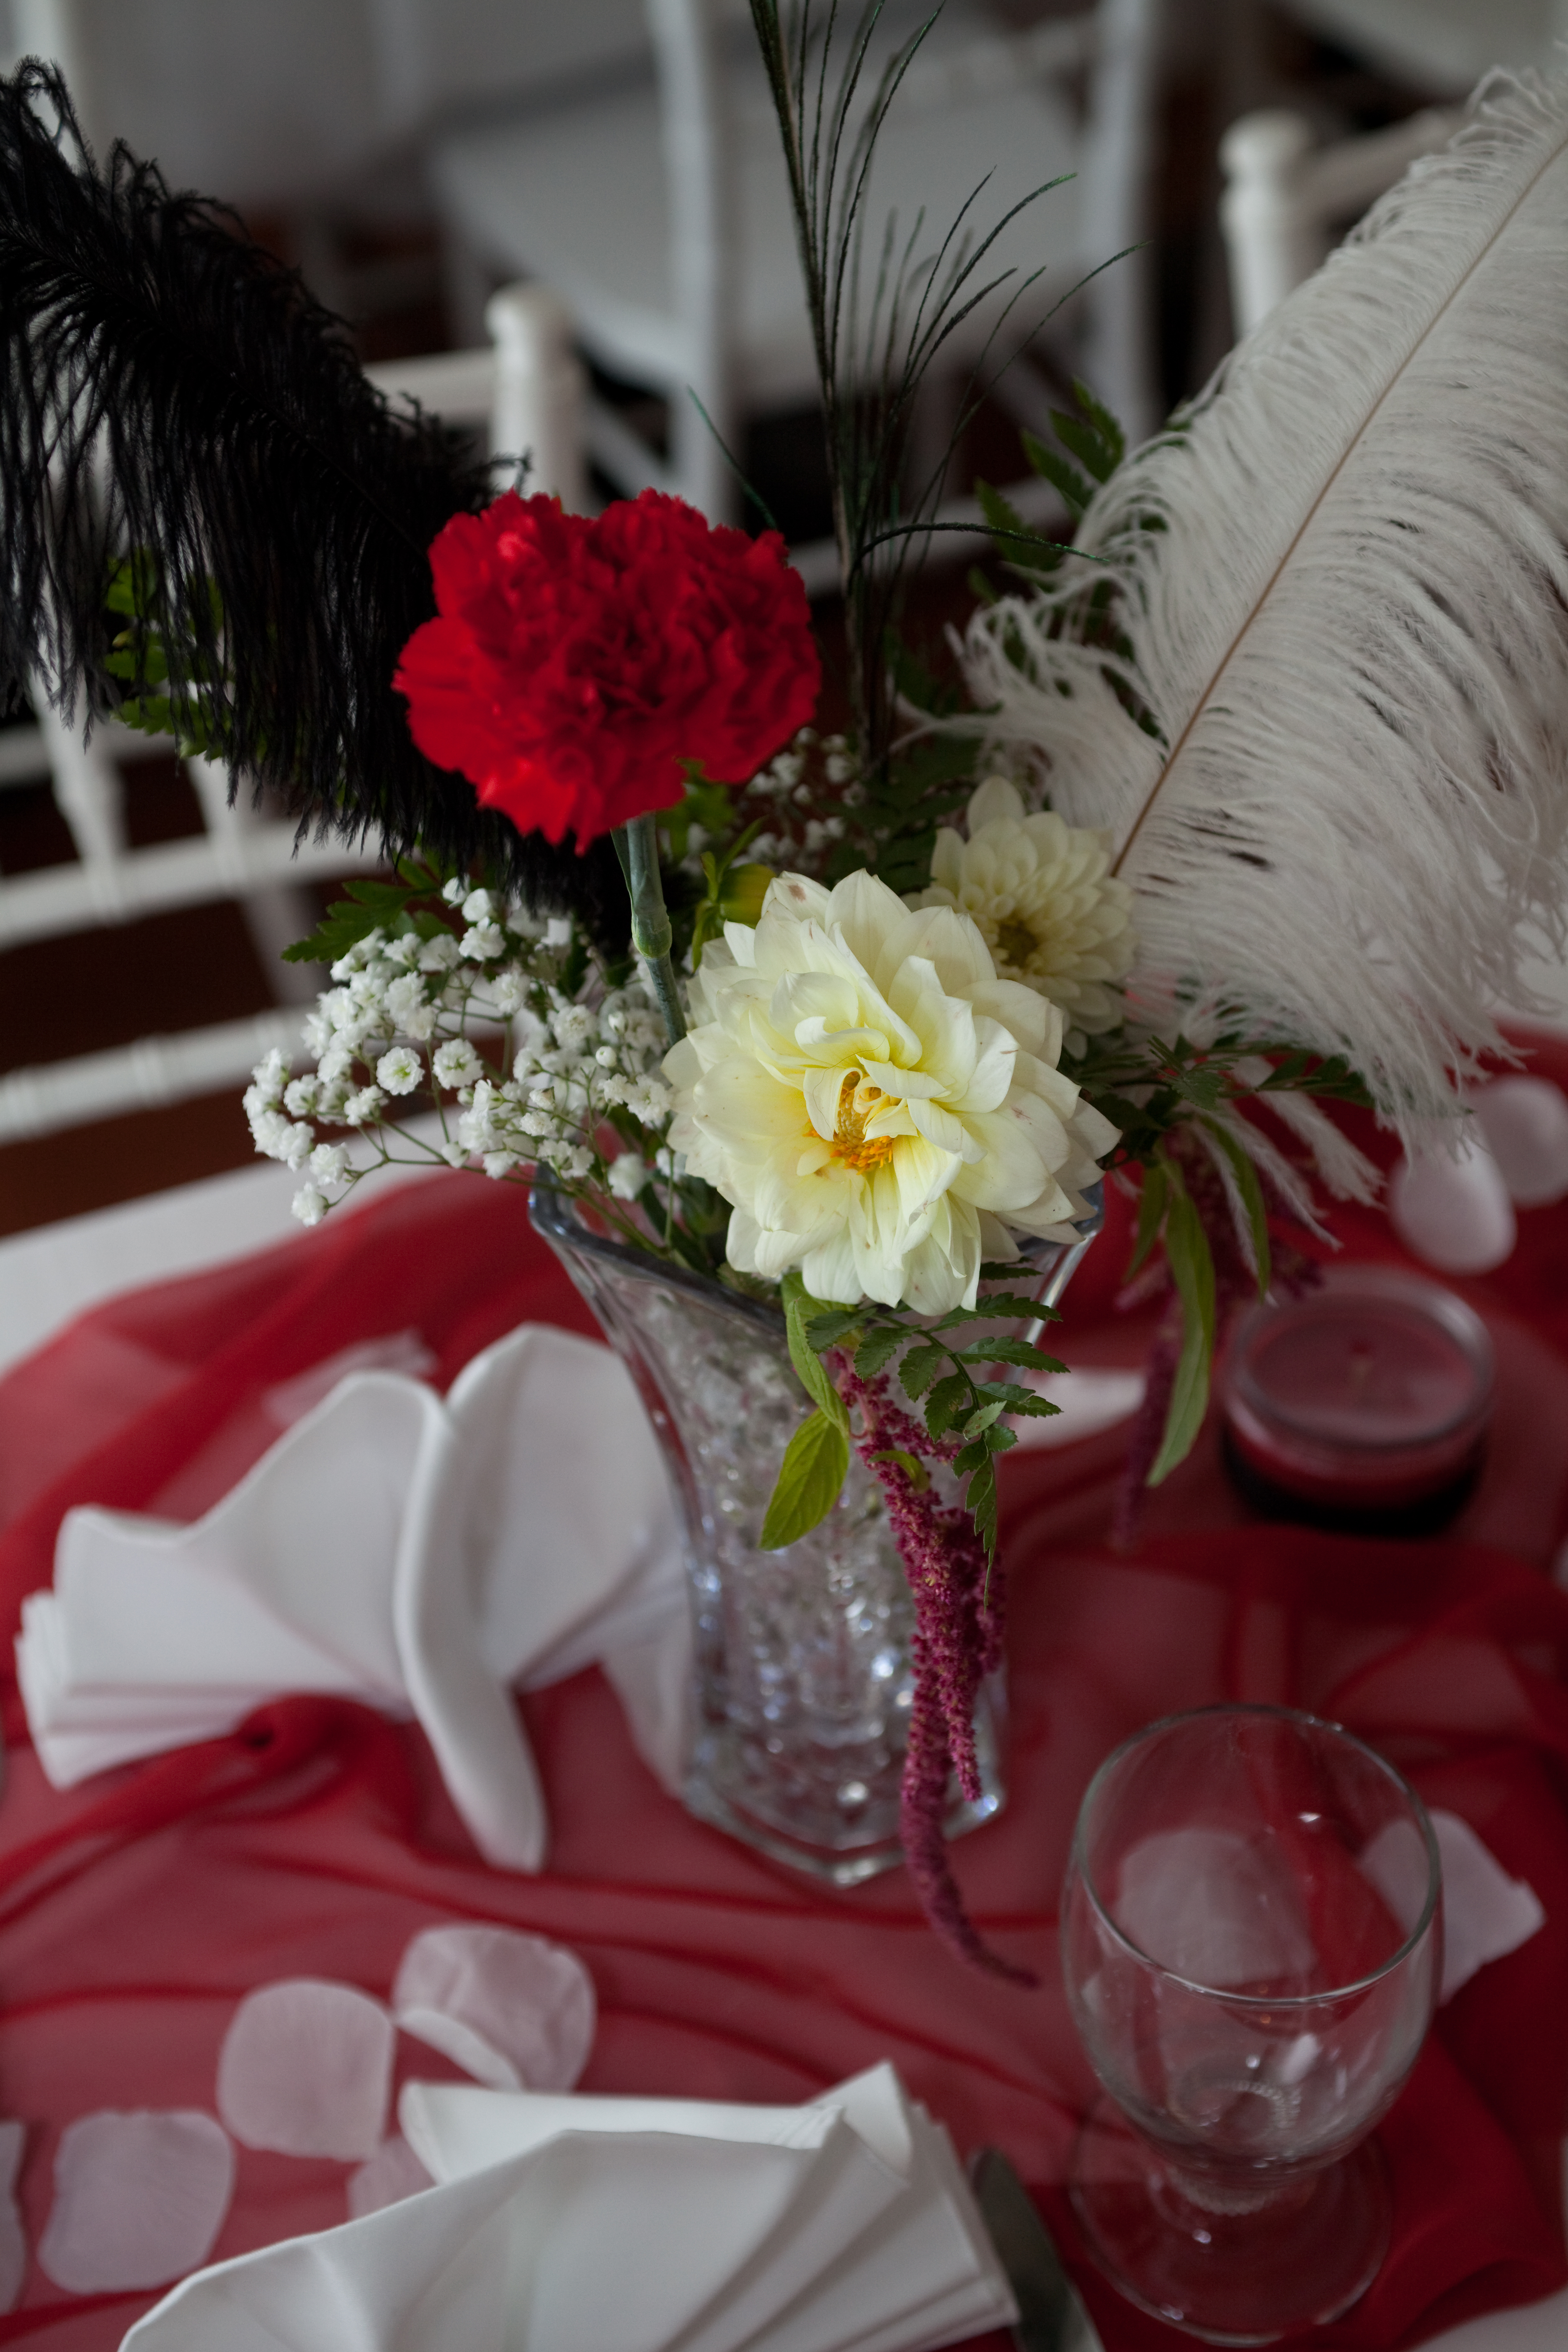 Wedding Table Centerpieces And Flowers 7 Steps Instructables